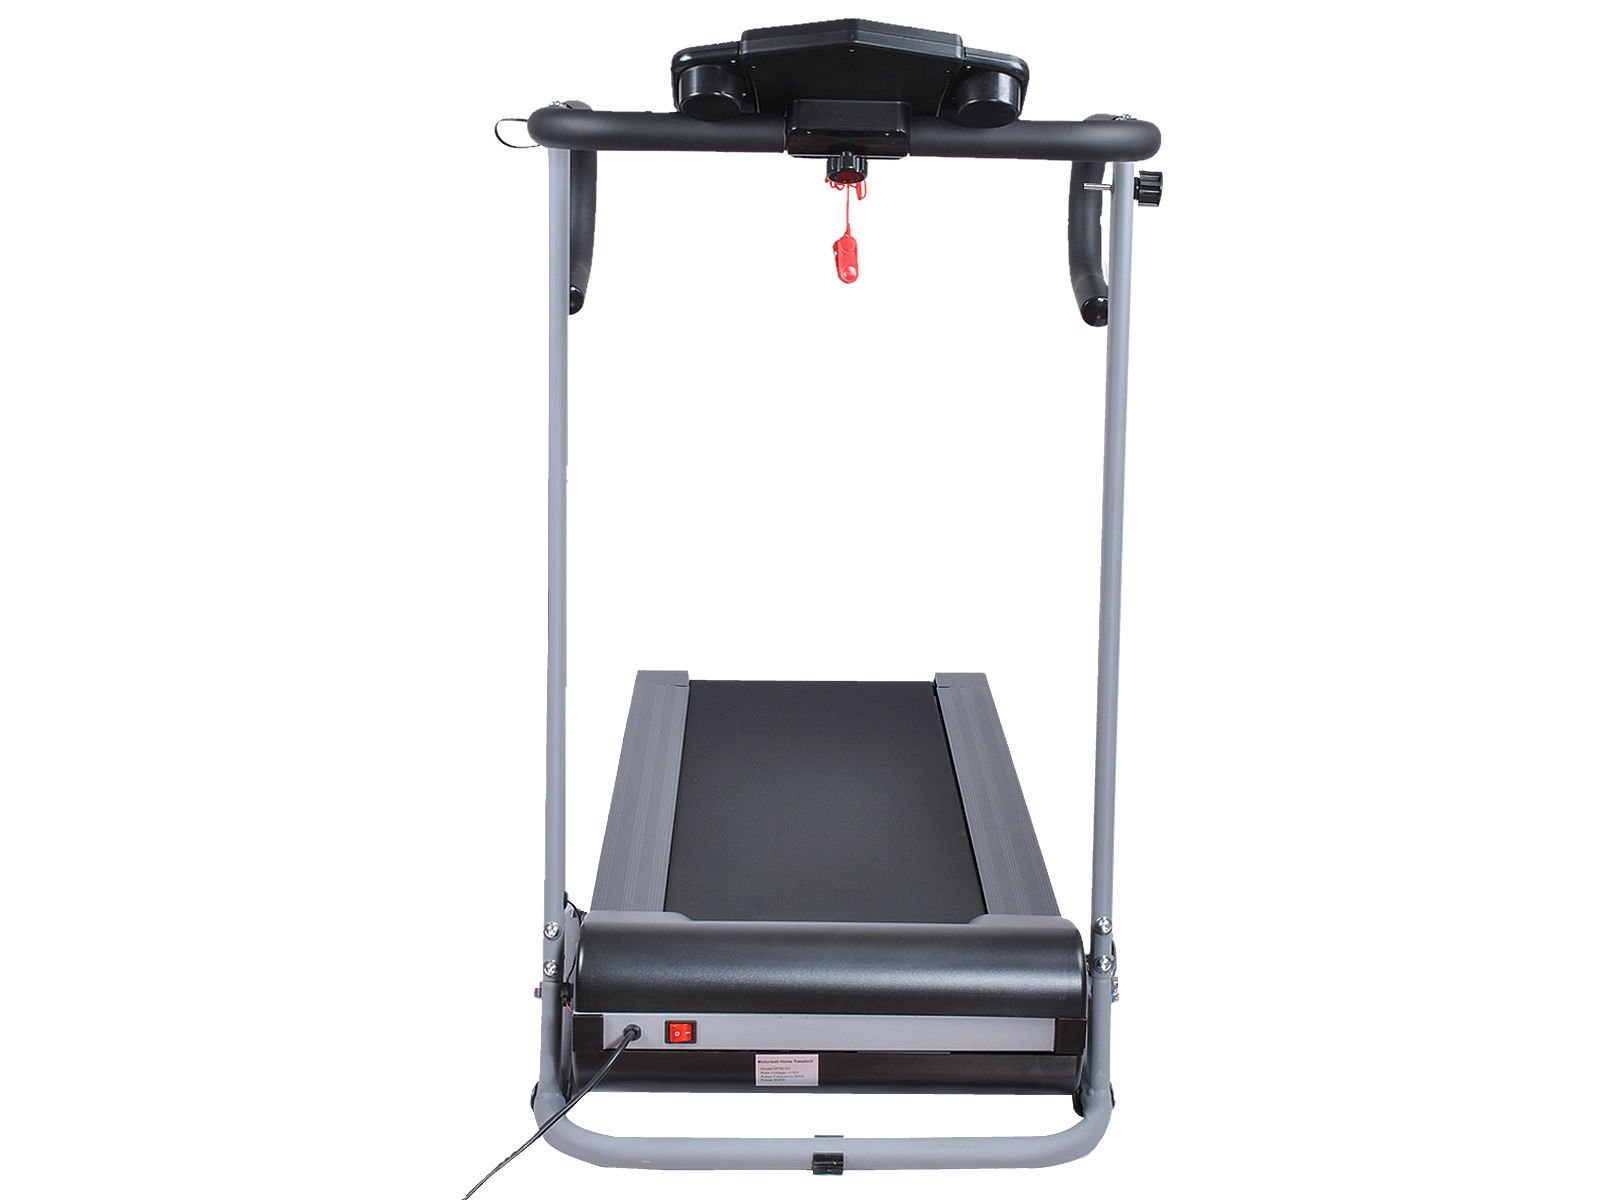 Alitop 500W Folding Electric Running Machine Black by Alitop (Image #3)